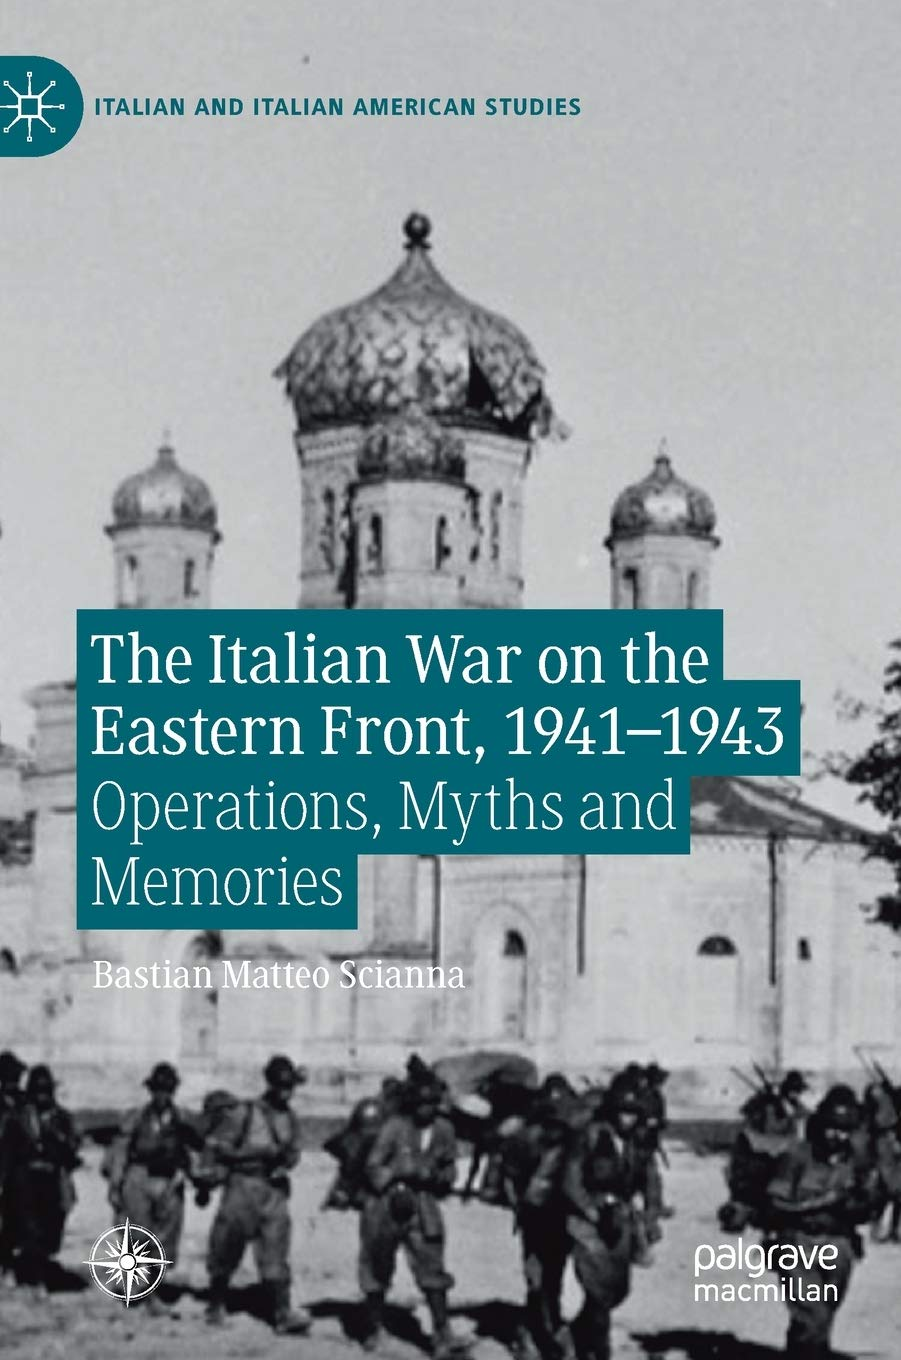 The Italian War on the Eastern Front, 1941-1943: Operations, Myths and Memories (Italian and Italian American Studies) by Palgrave Macmillan